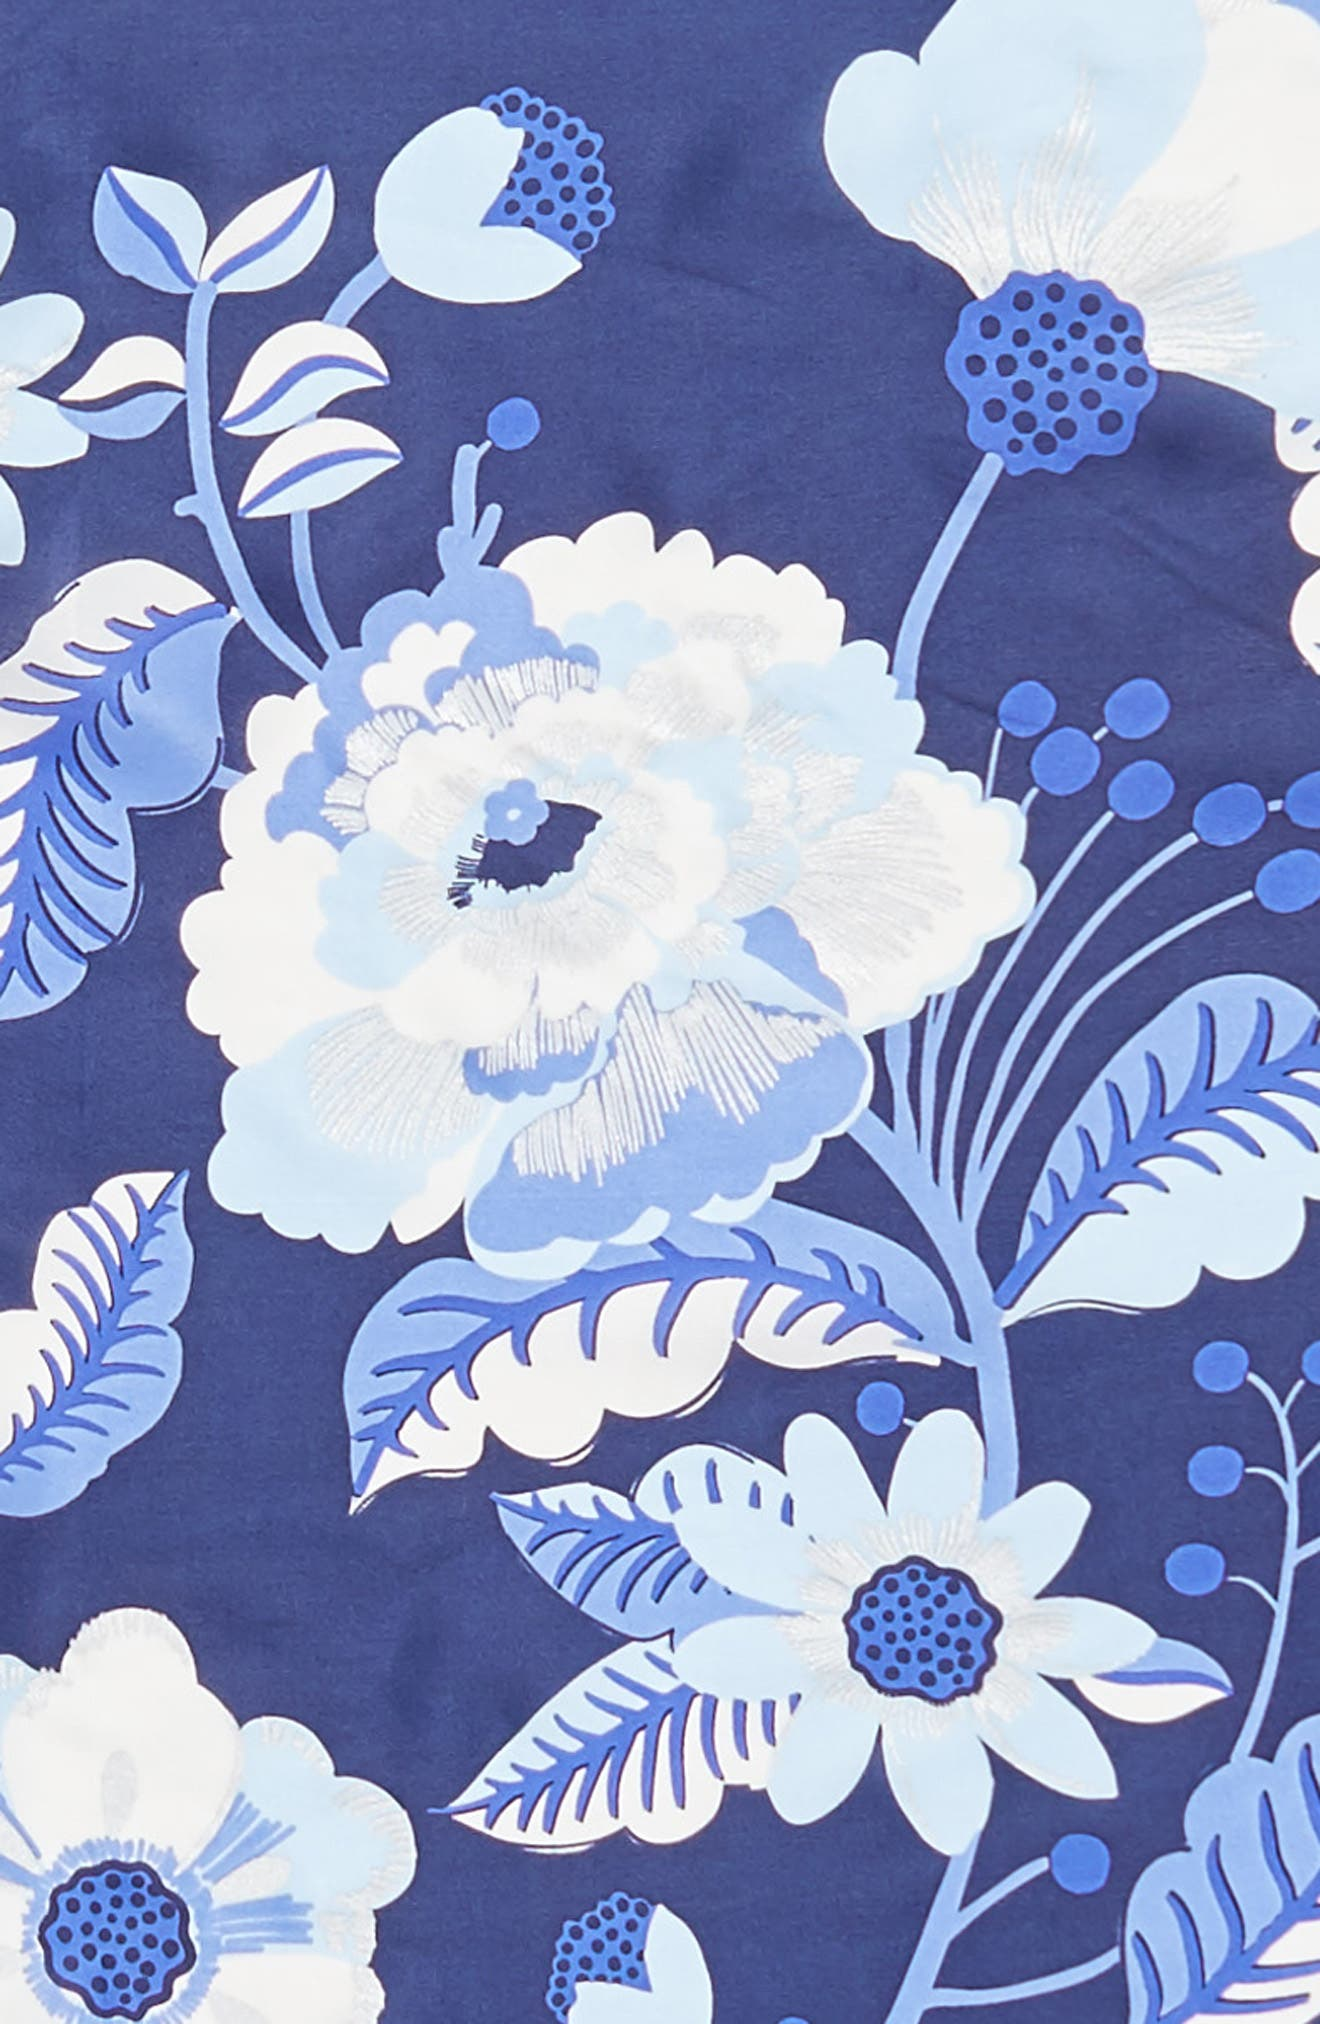 Bloomsbury Square Silk Scarf,                             Alternate thumbnail 4, color,                             411